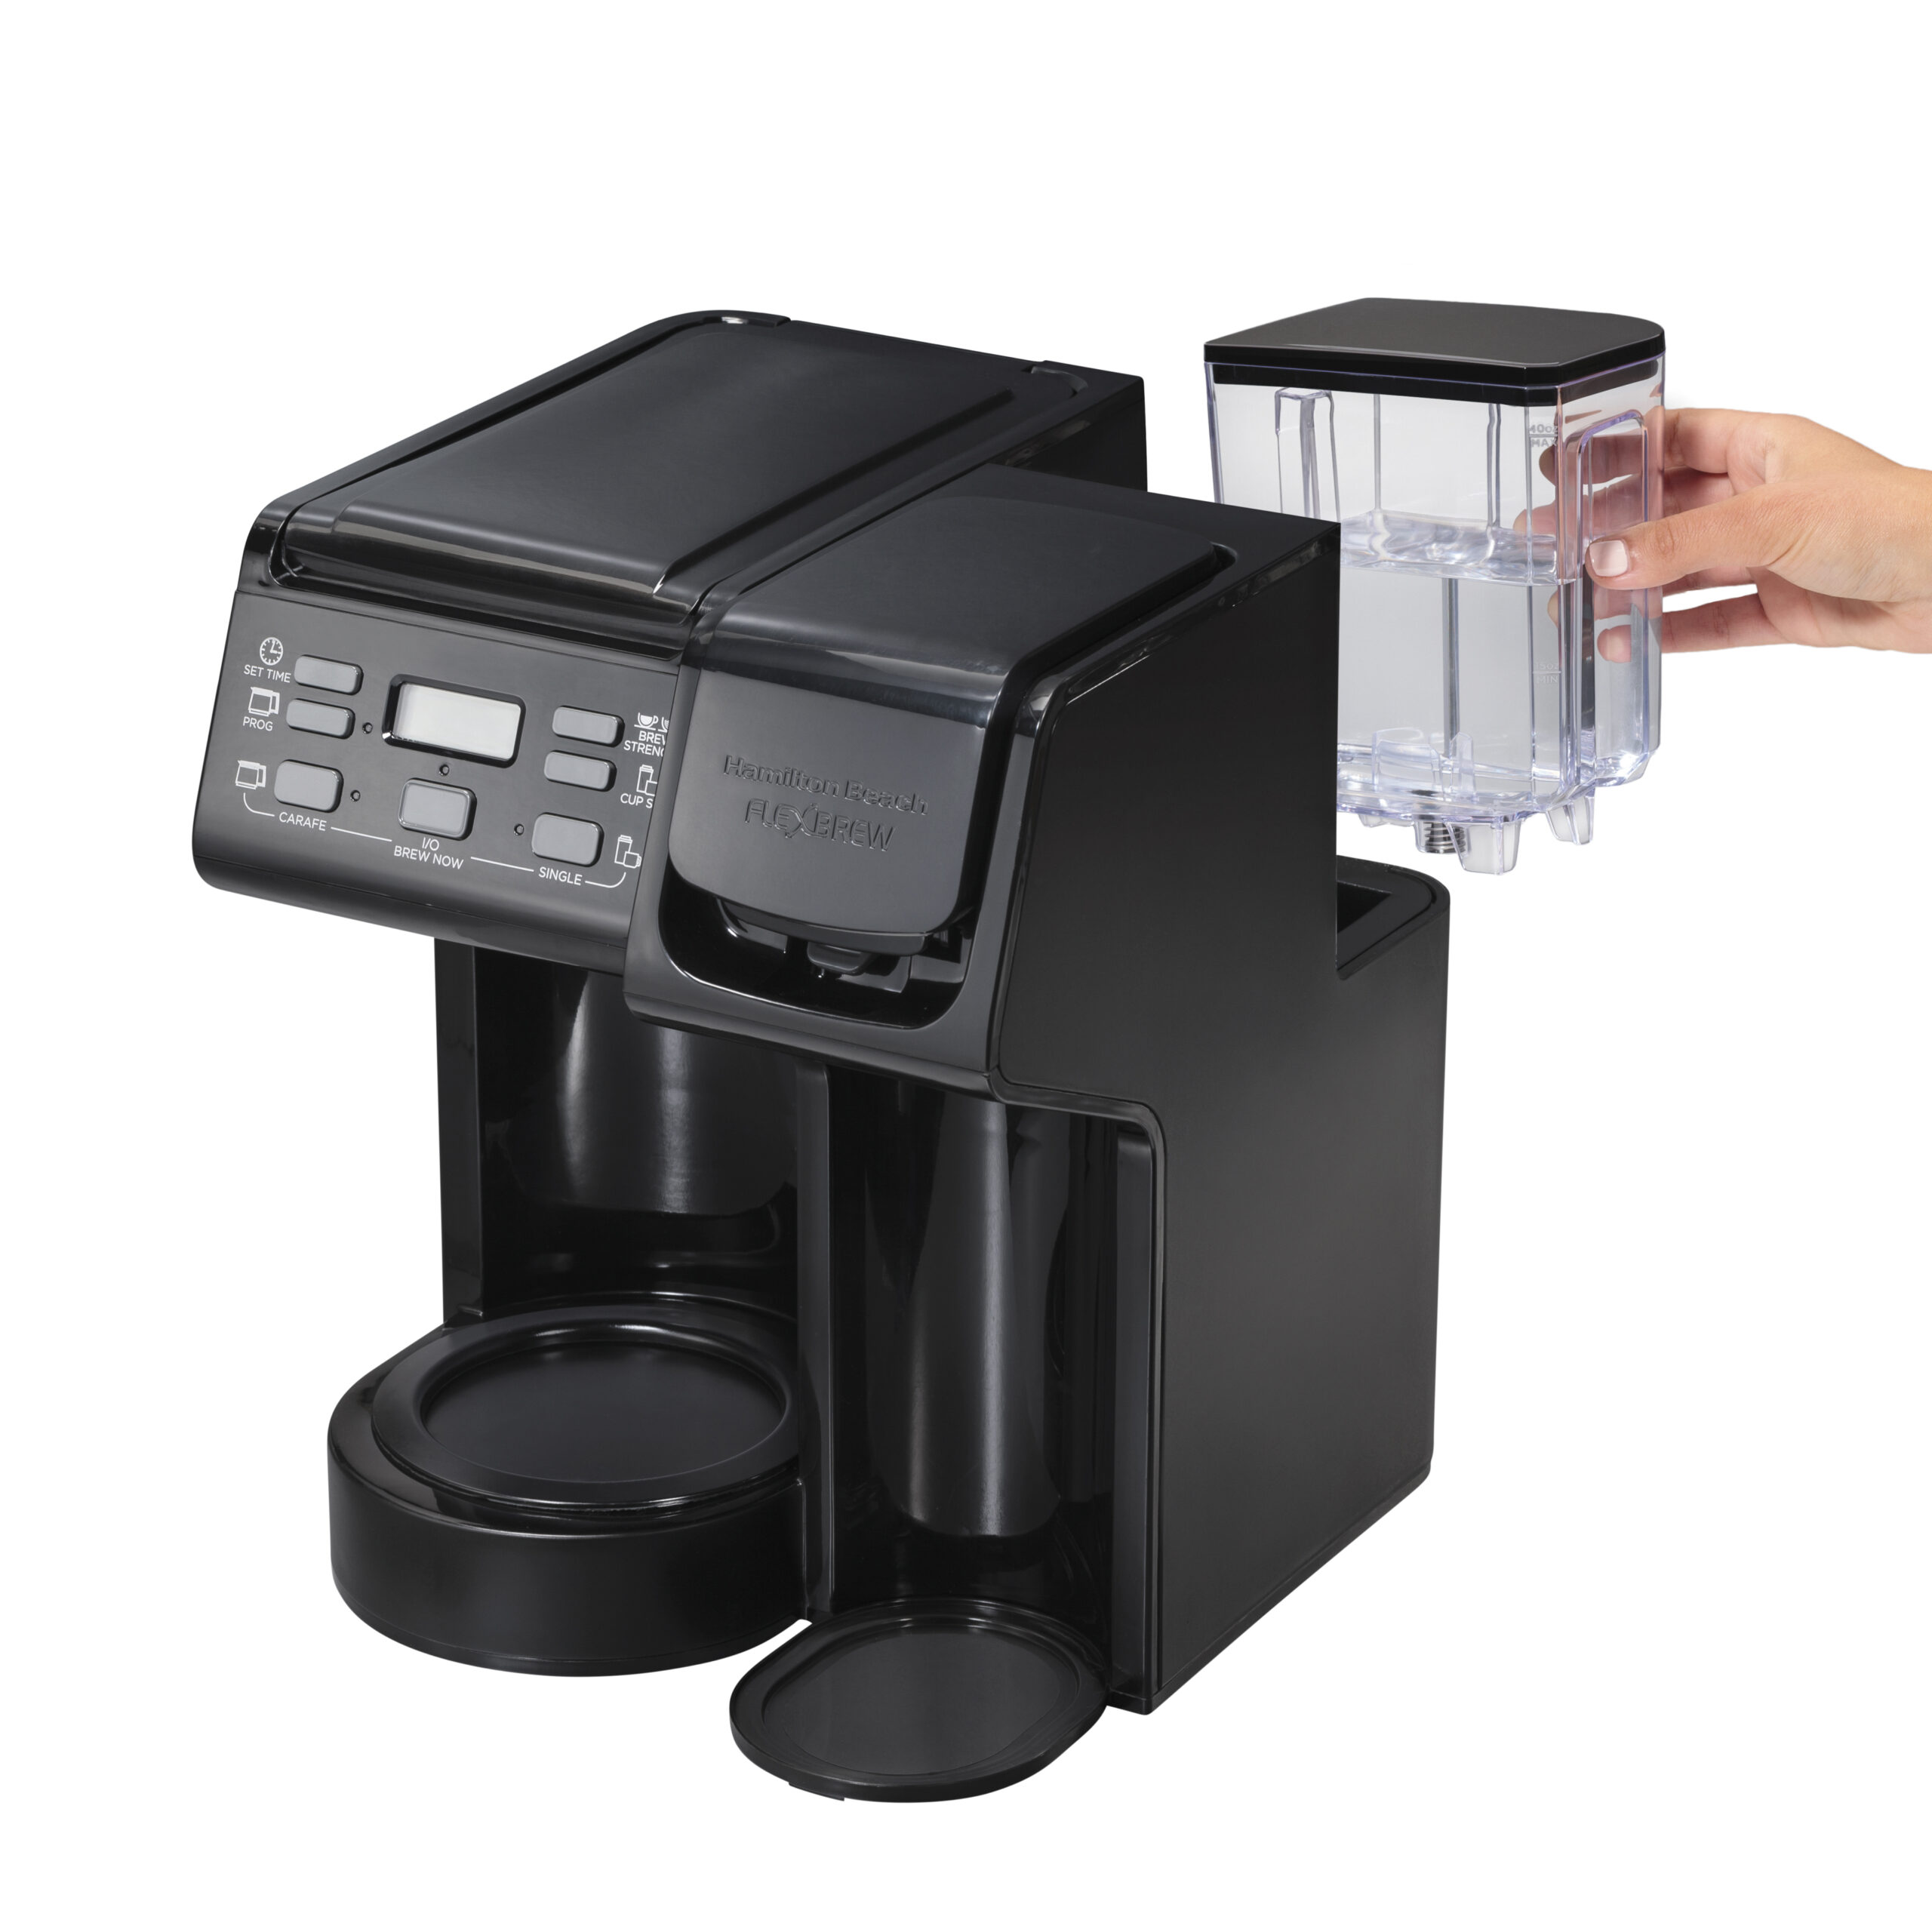 Hamilton Beach FlexBrew coffee maker takes branded coffee and tea pods or a reusable filter for an eco-friendly hot beverage.